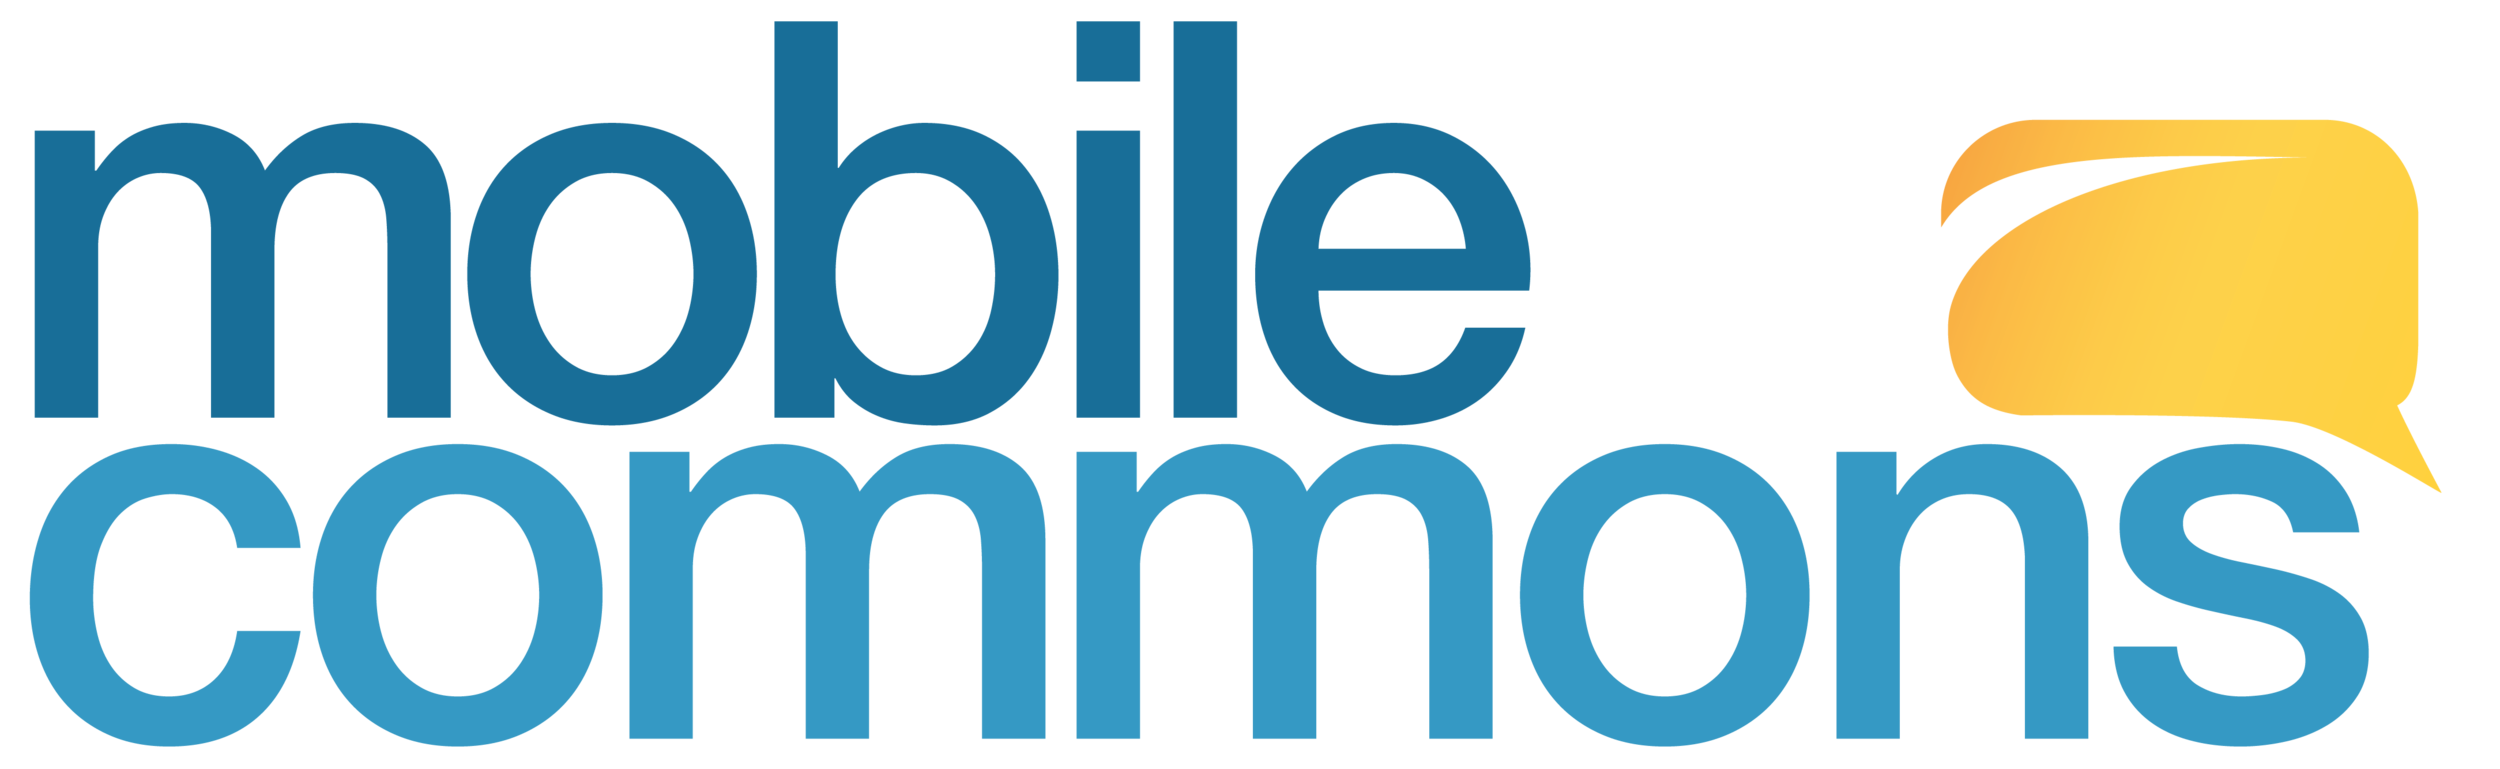 Mobile-Commons-Logo-High-Res.png